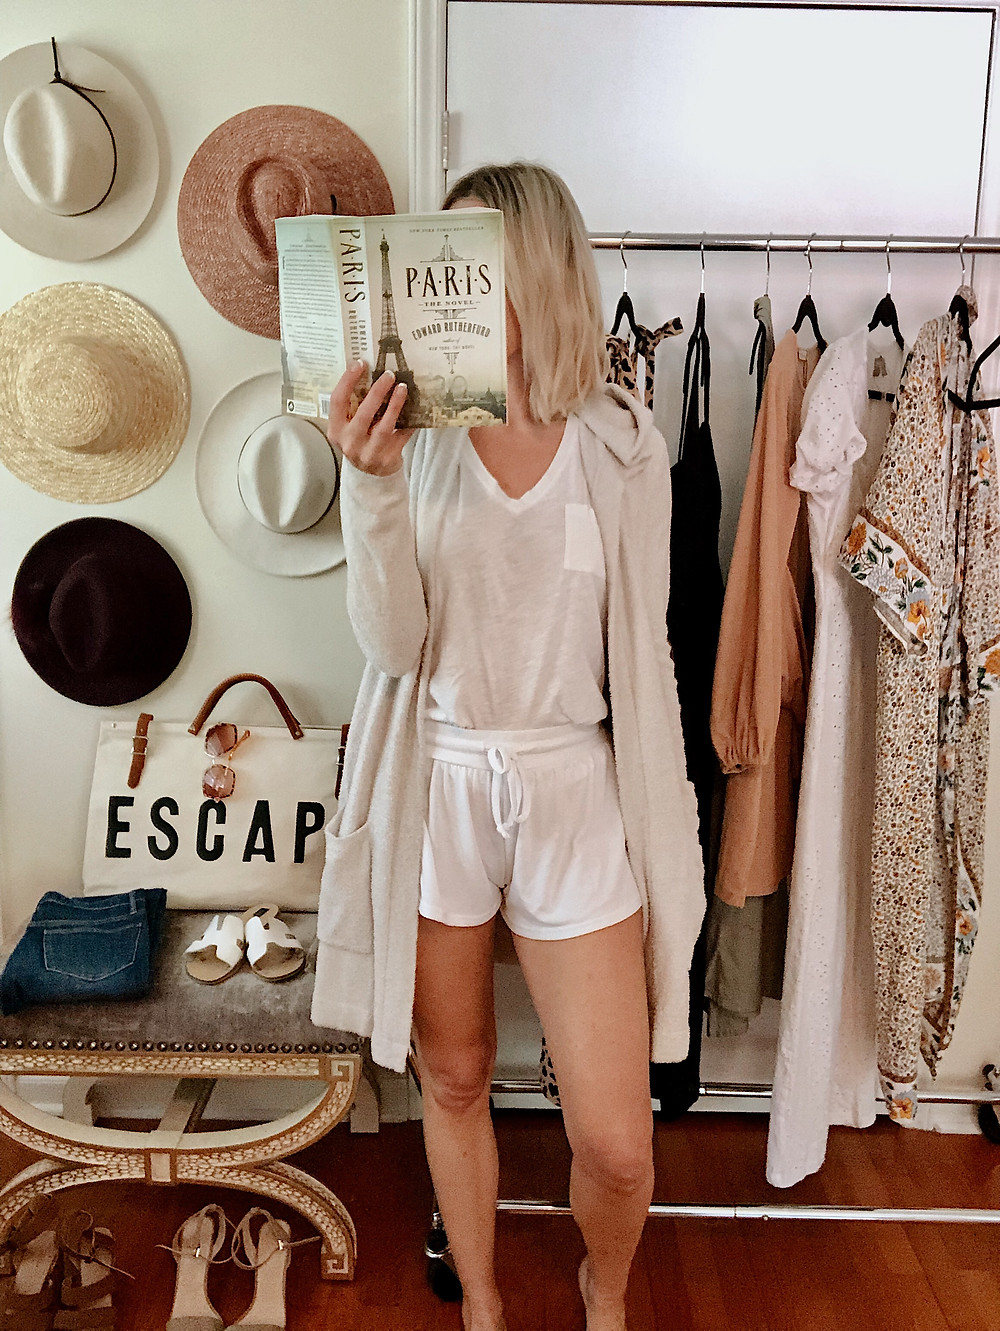 Loungewear, vacation, Barefoot dreams cardigan, white tank, white sleep shorts, cozy outfit, style blogger, everyday style, anniversary getaway to Asheville